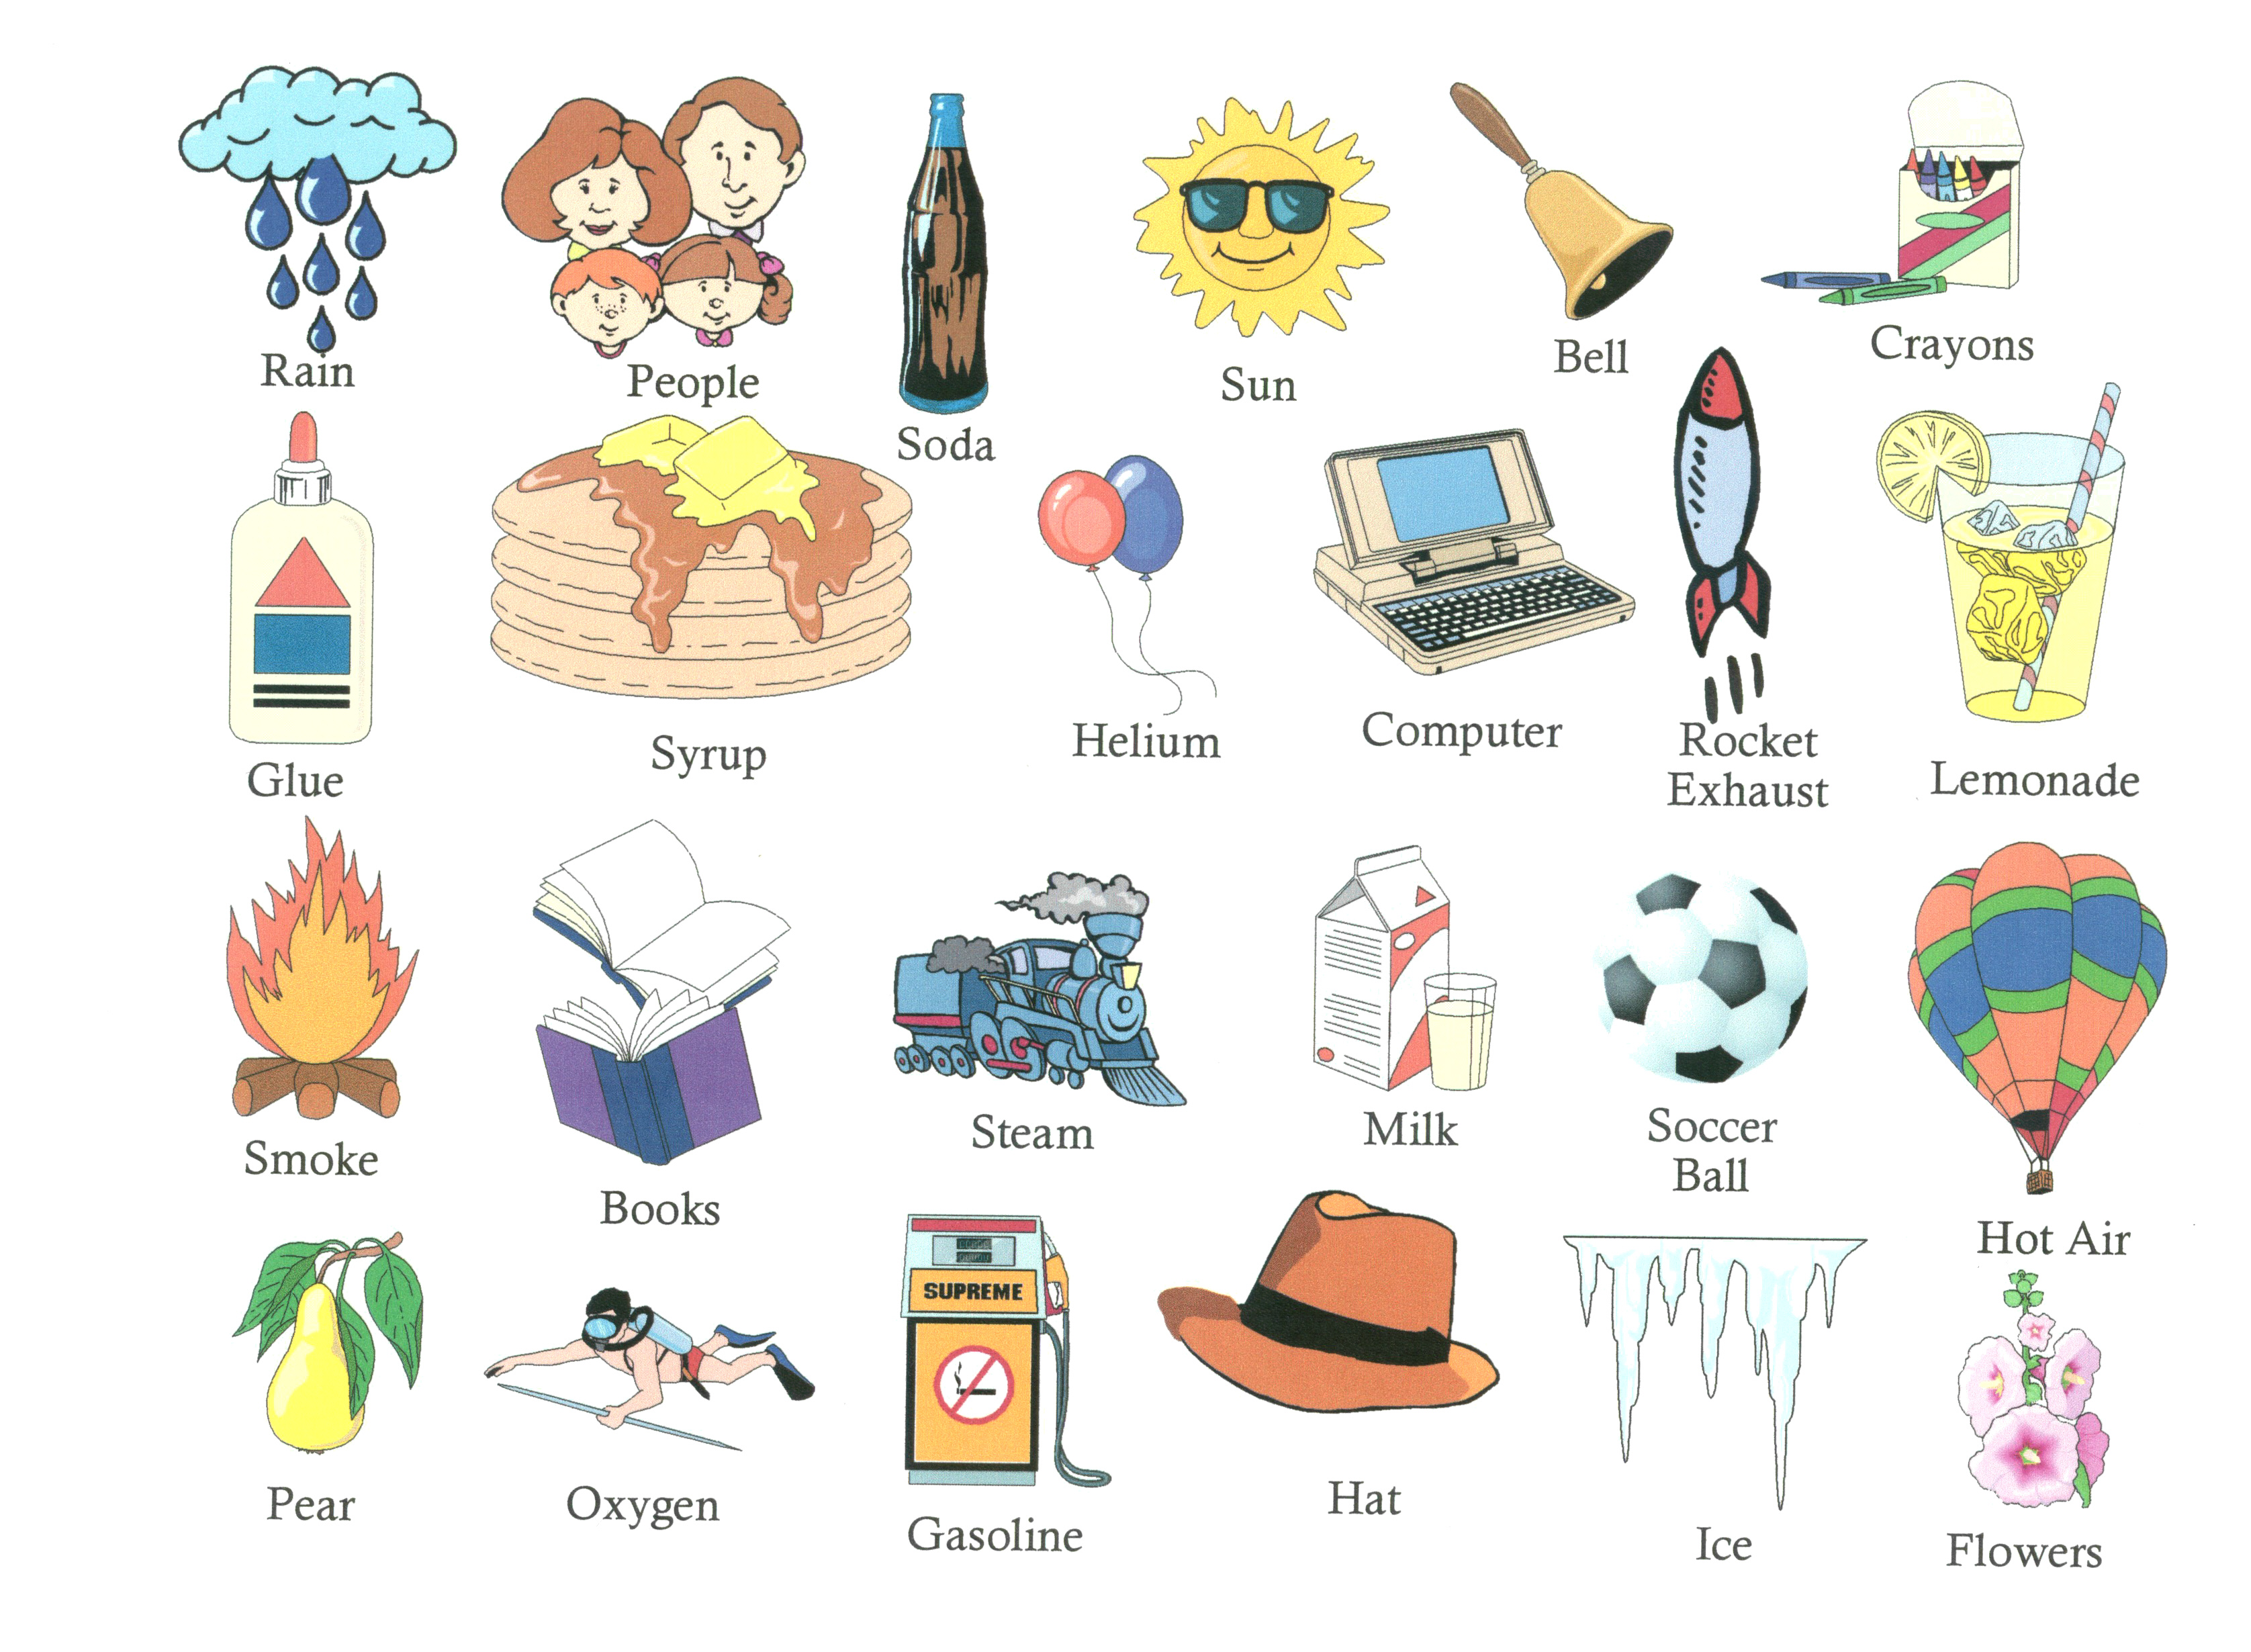 Examples of gas clipart image royalty free library Examples of solid clipart - ClipartFest image royalty free library